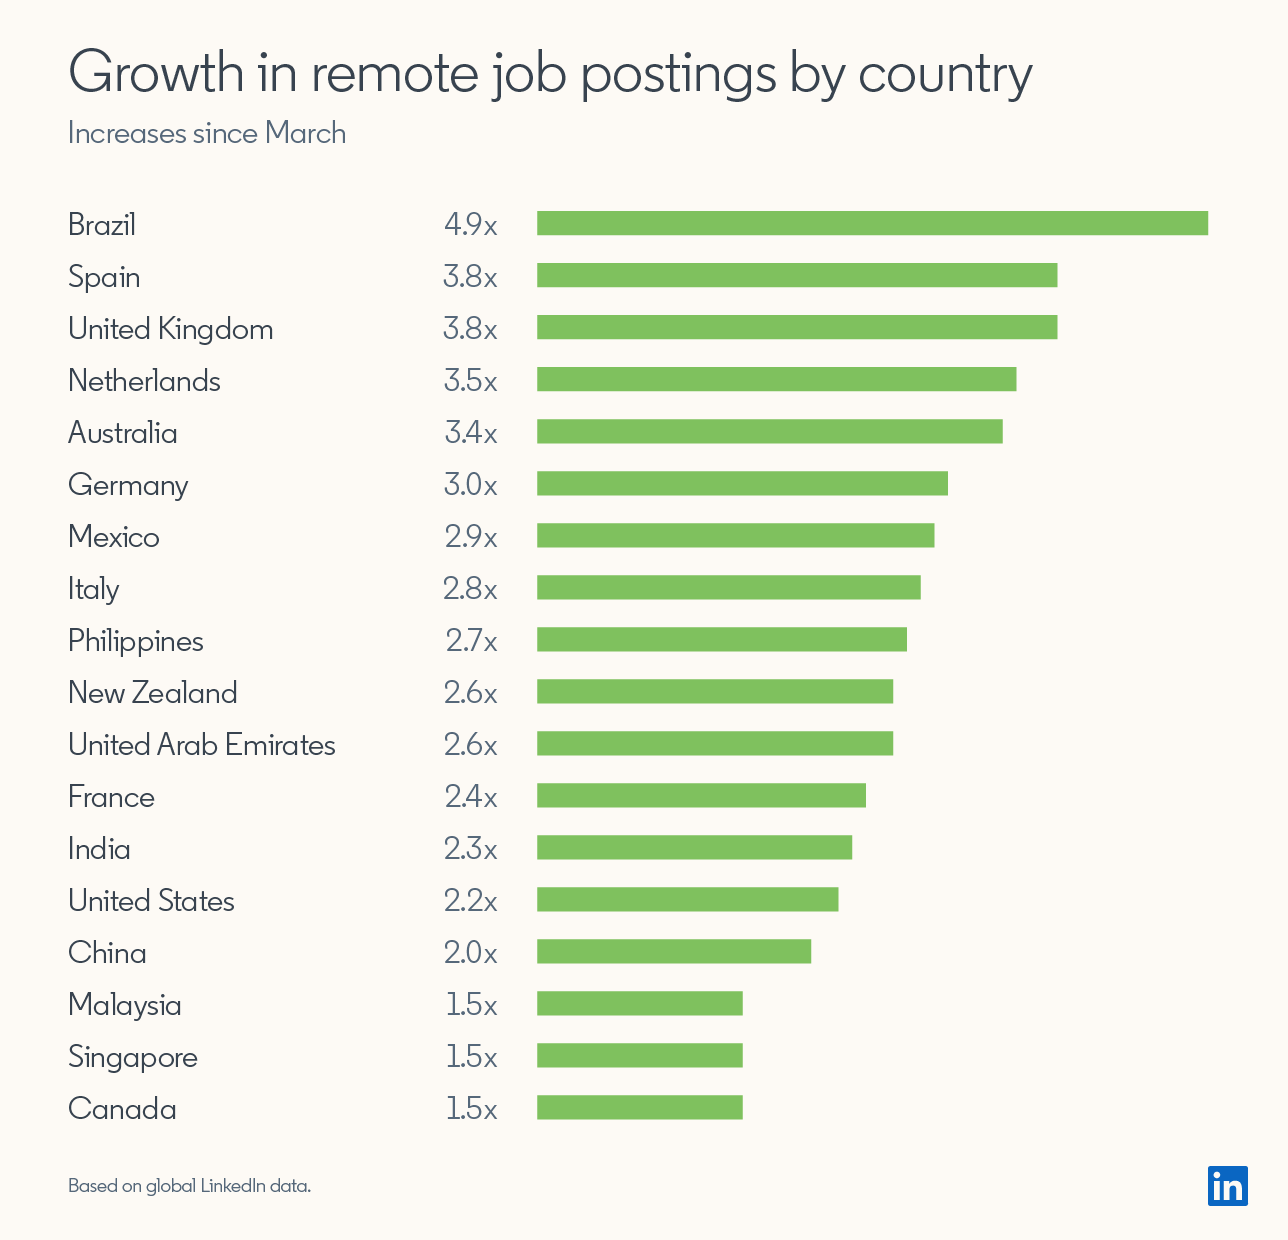 "Graphic showing ""Growth in remote job postings by country (increases since March)""  Brazil: 4.9x Spain: 3.8x UK: 3.8x Netherlands: 3.5x Australia: 3.4x Germany: 3.0x Mexico: 2.9x Italy: 2.8x Philippines: 2.7x New Zealand: 2.6x UAE: 2.6x France: 2.4x India: 2.3x USA: 2.2x China: 2.0x Malaysia: 1.5x Singapore: 1.5x Canada: 1.5x  *Based on global LinkedIn data"